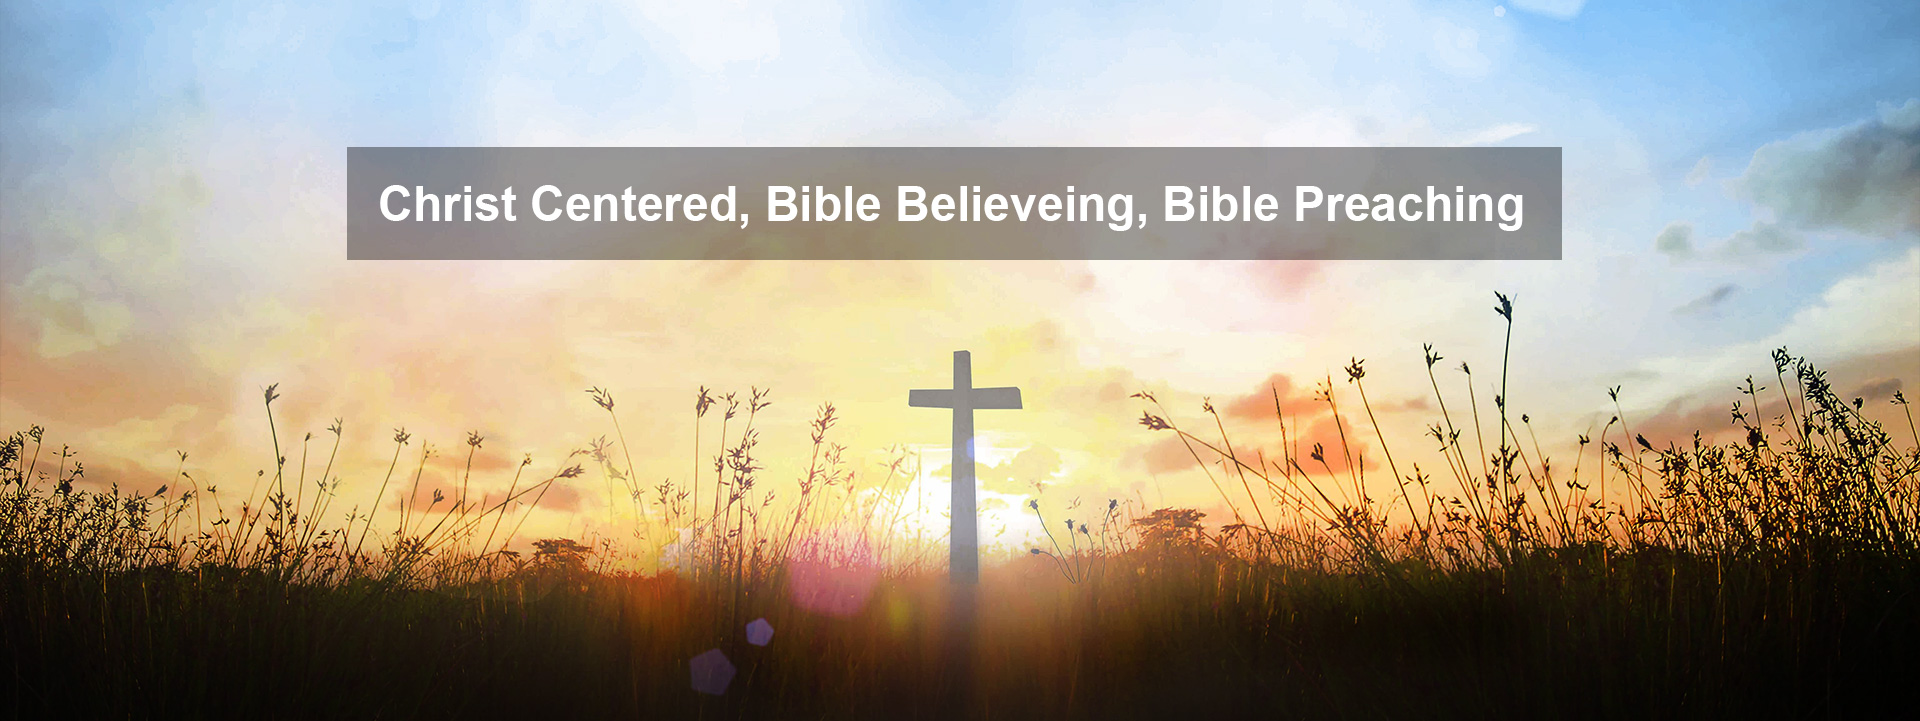 Christ Centered, Bible Believeing, Bible Preaching